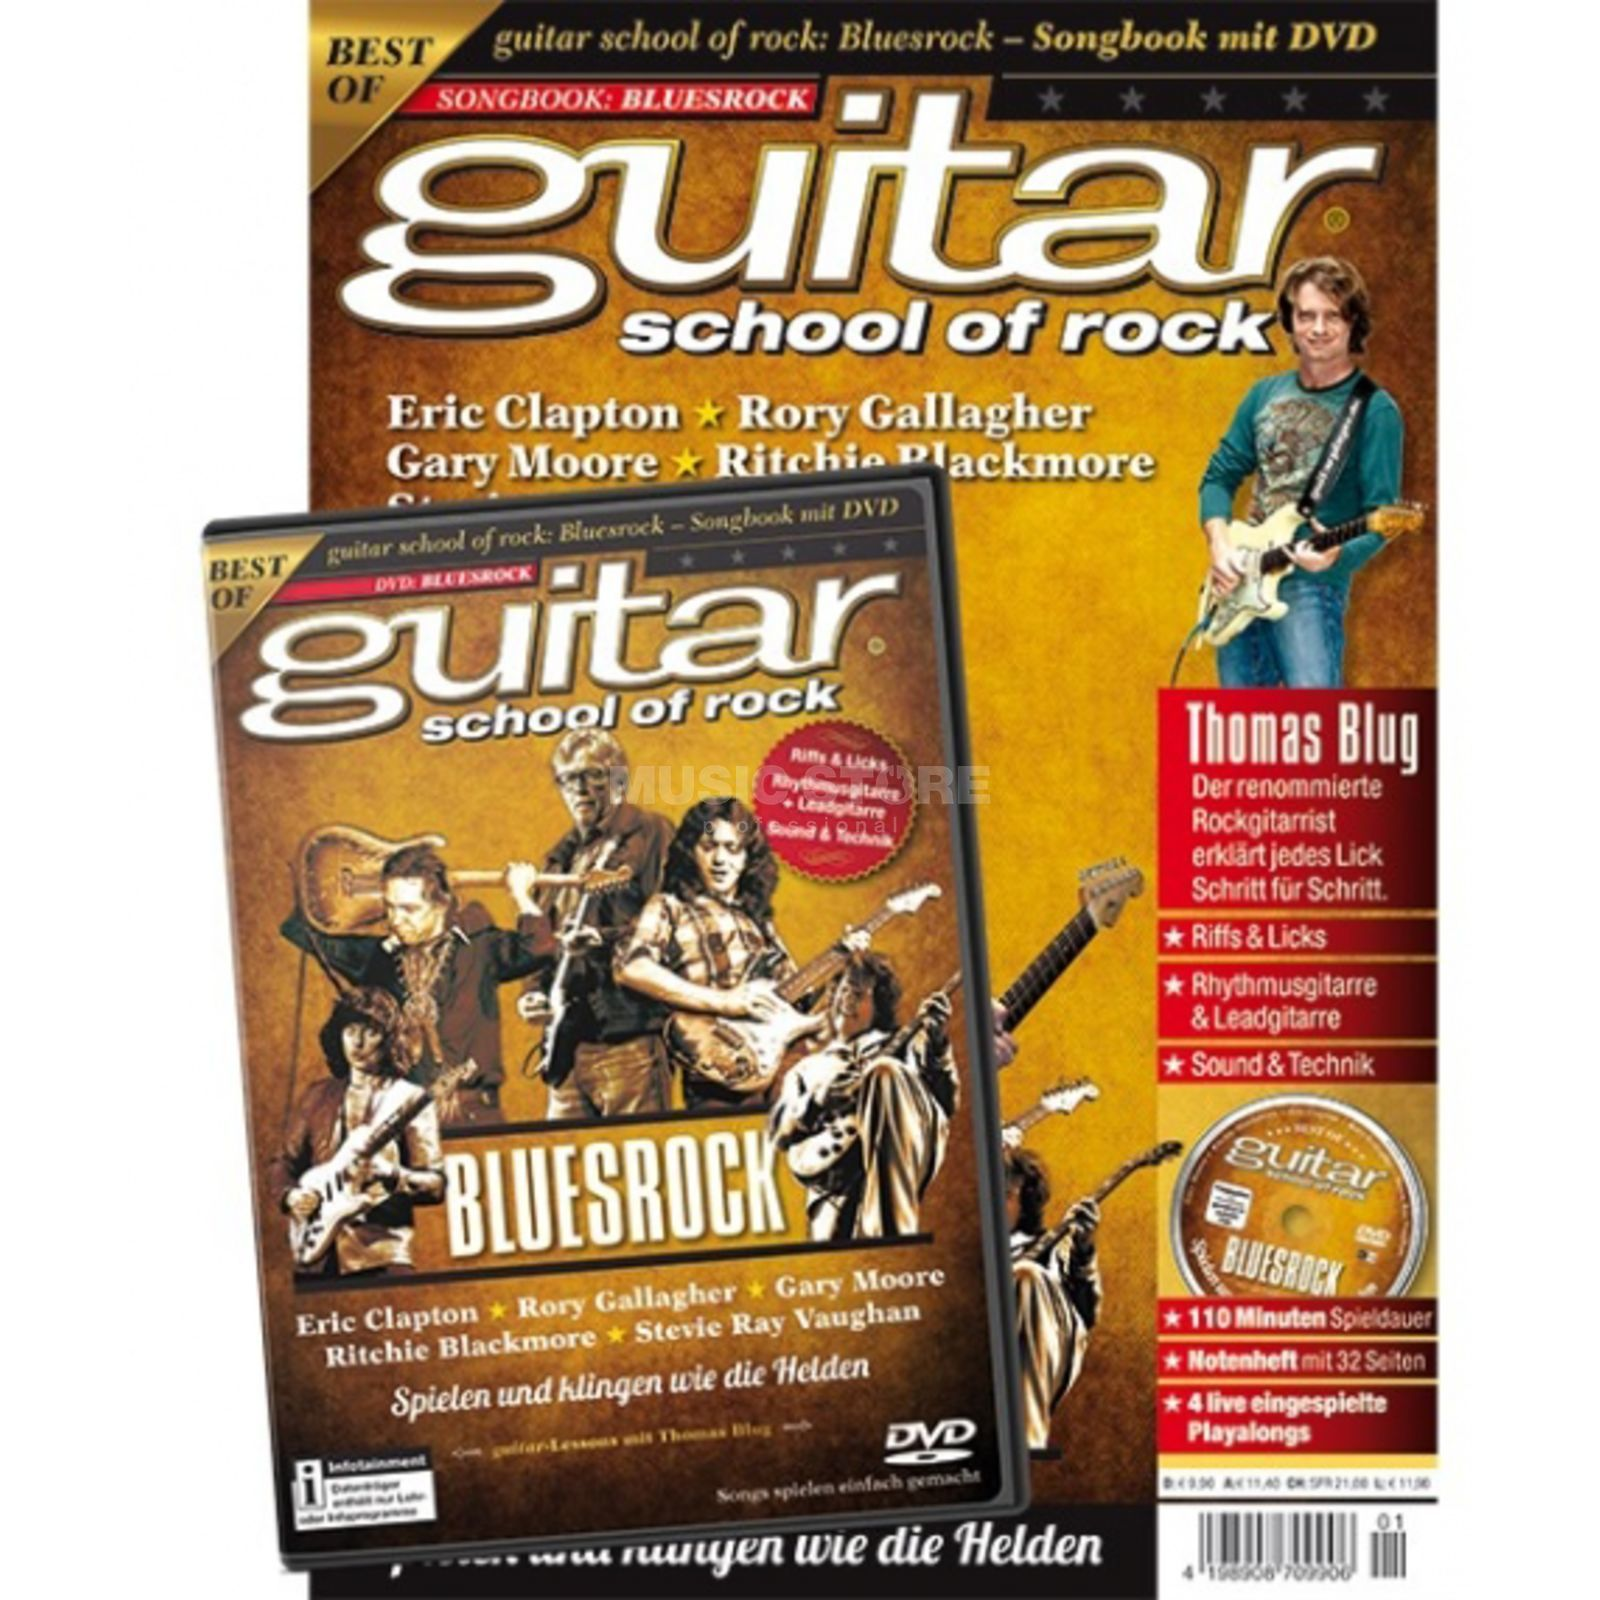 PPV Medien guitar school of rock: Bluesrock - Songbook mit DVD Produktbillede